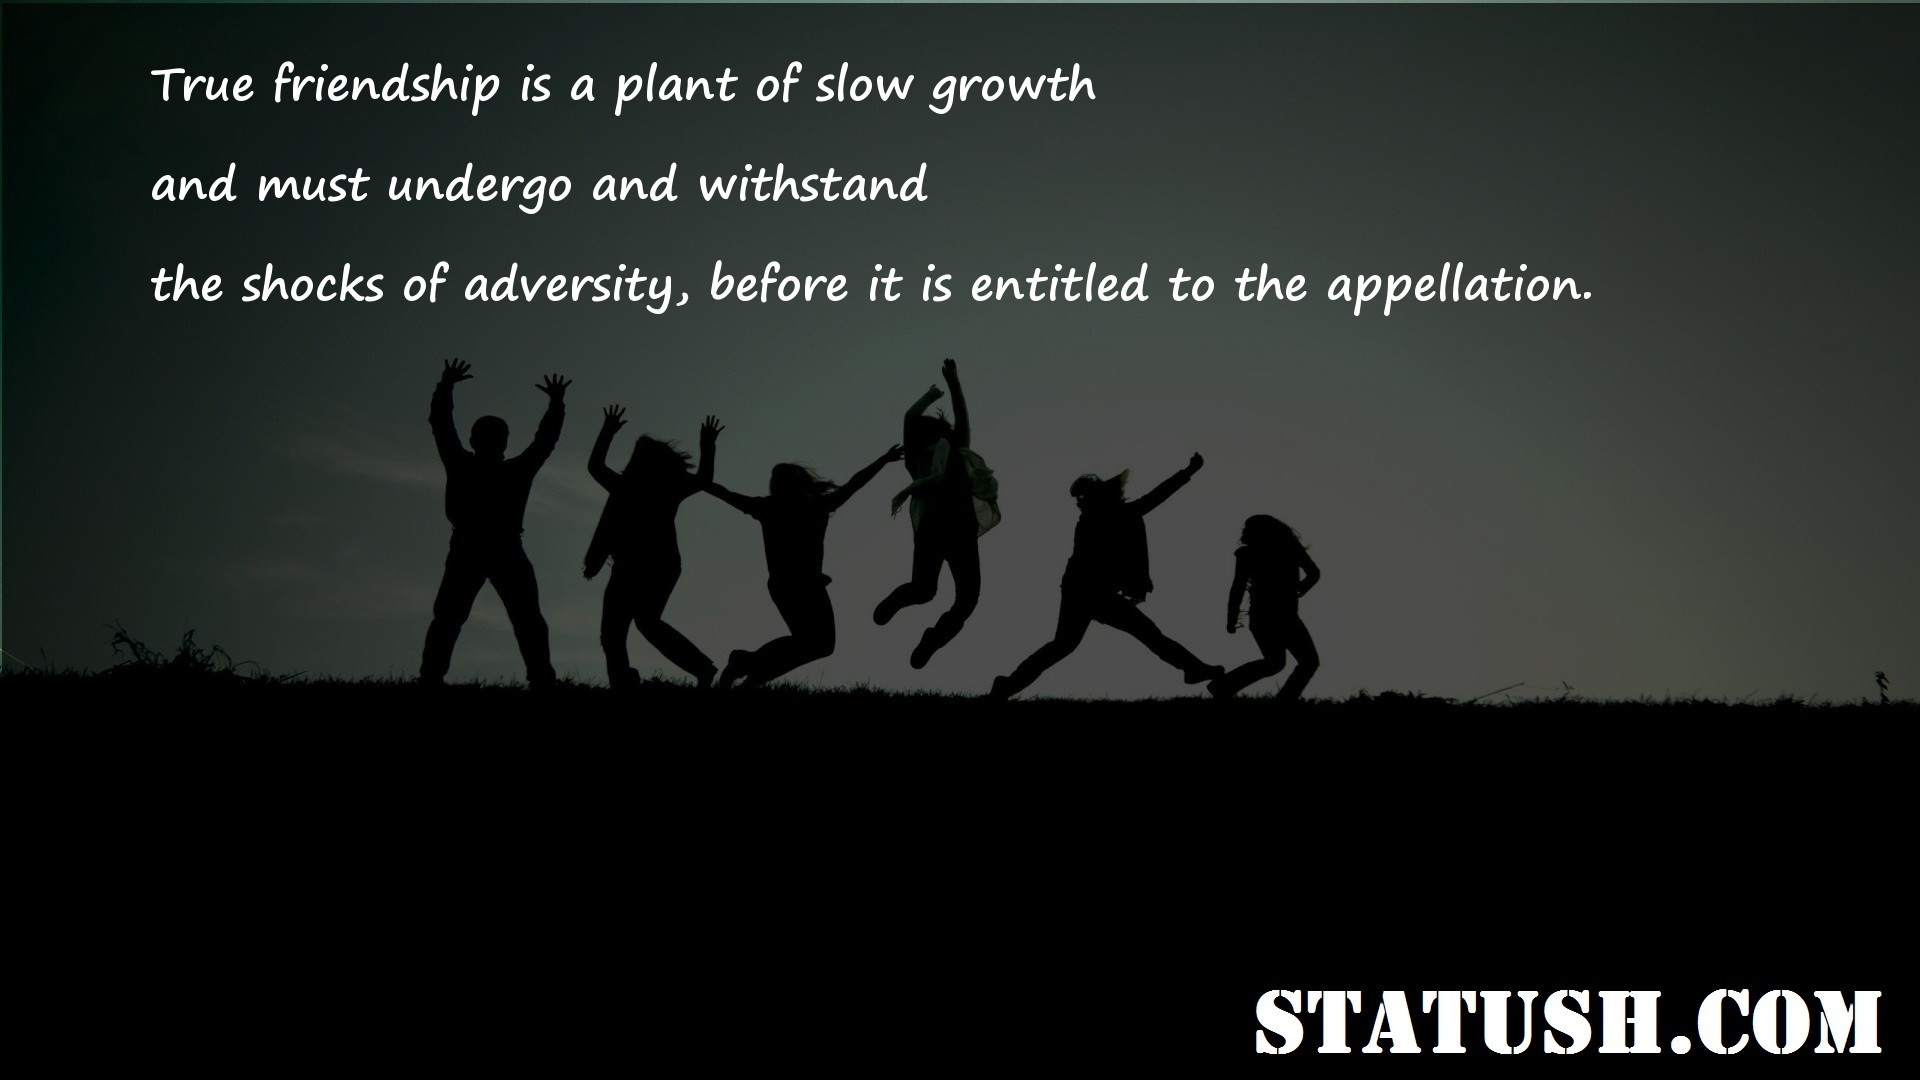 True friendship is a plant of slow growth